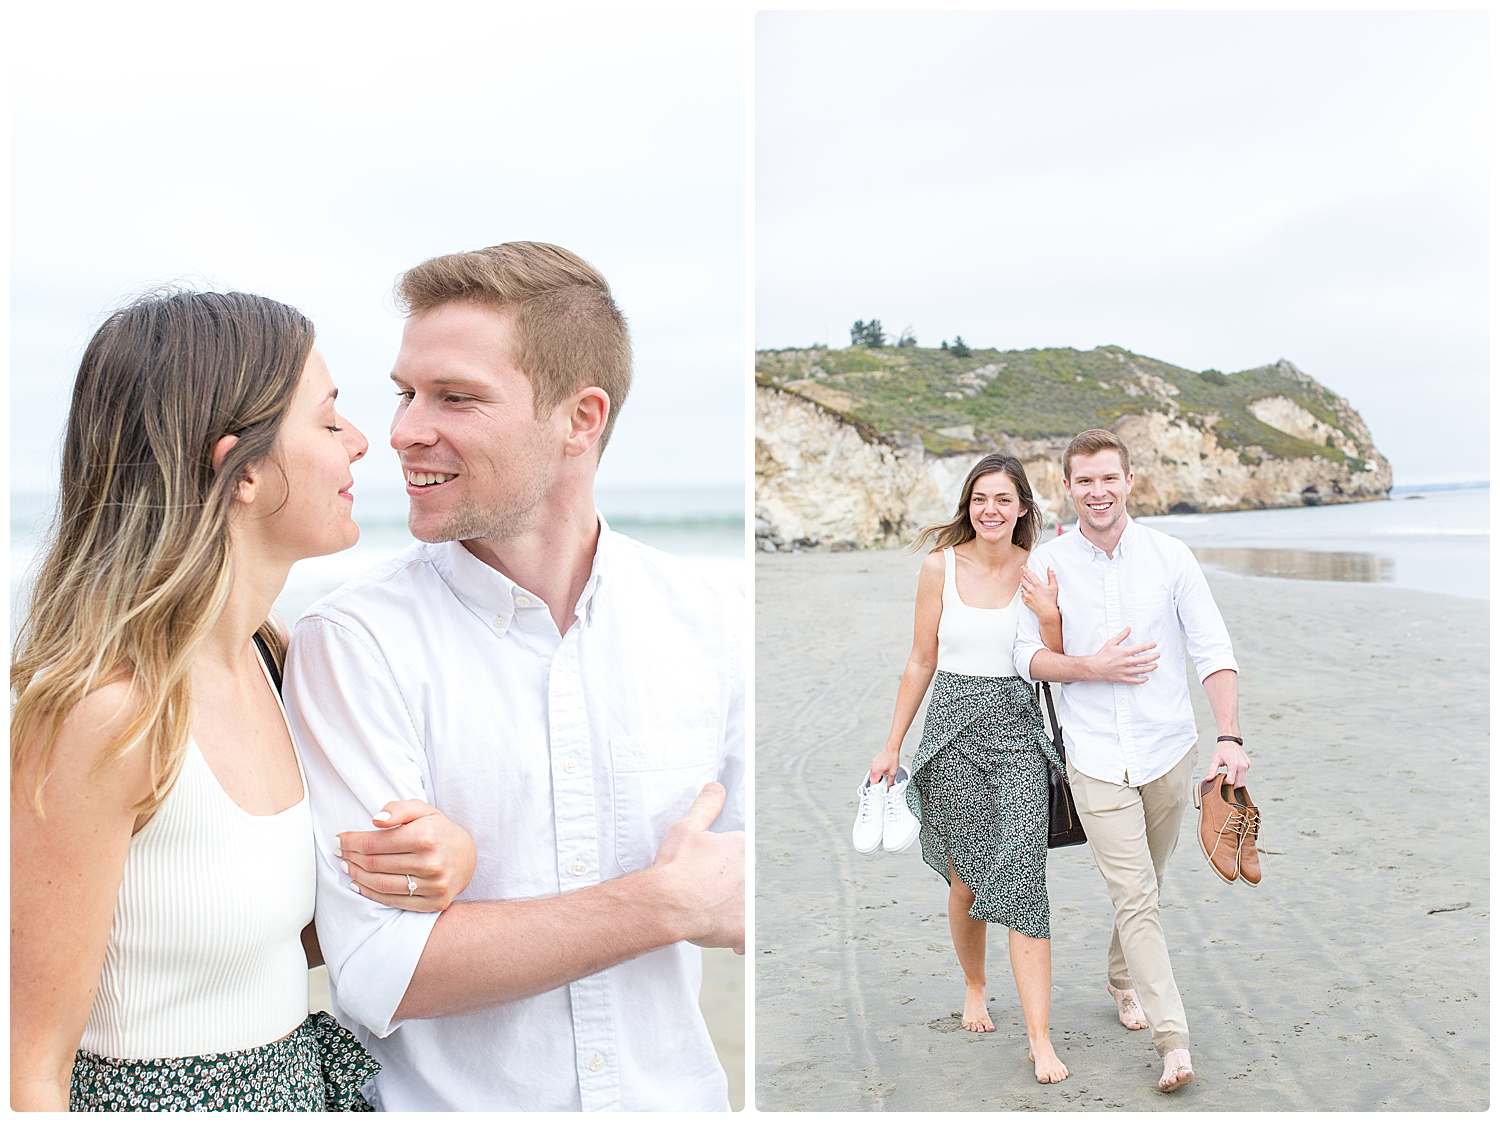 061919_EthanEmma_proposal_Renoda Campbell Photography-7372.jpg